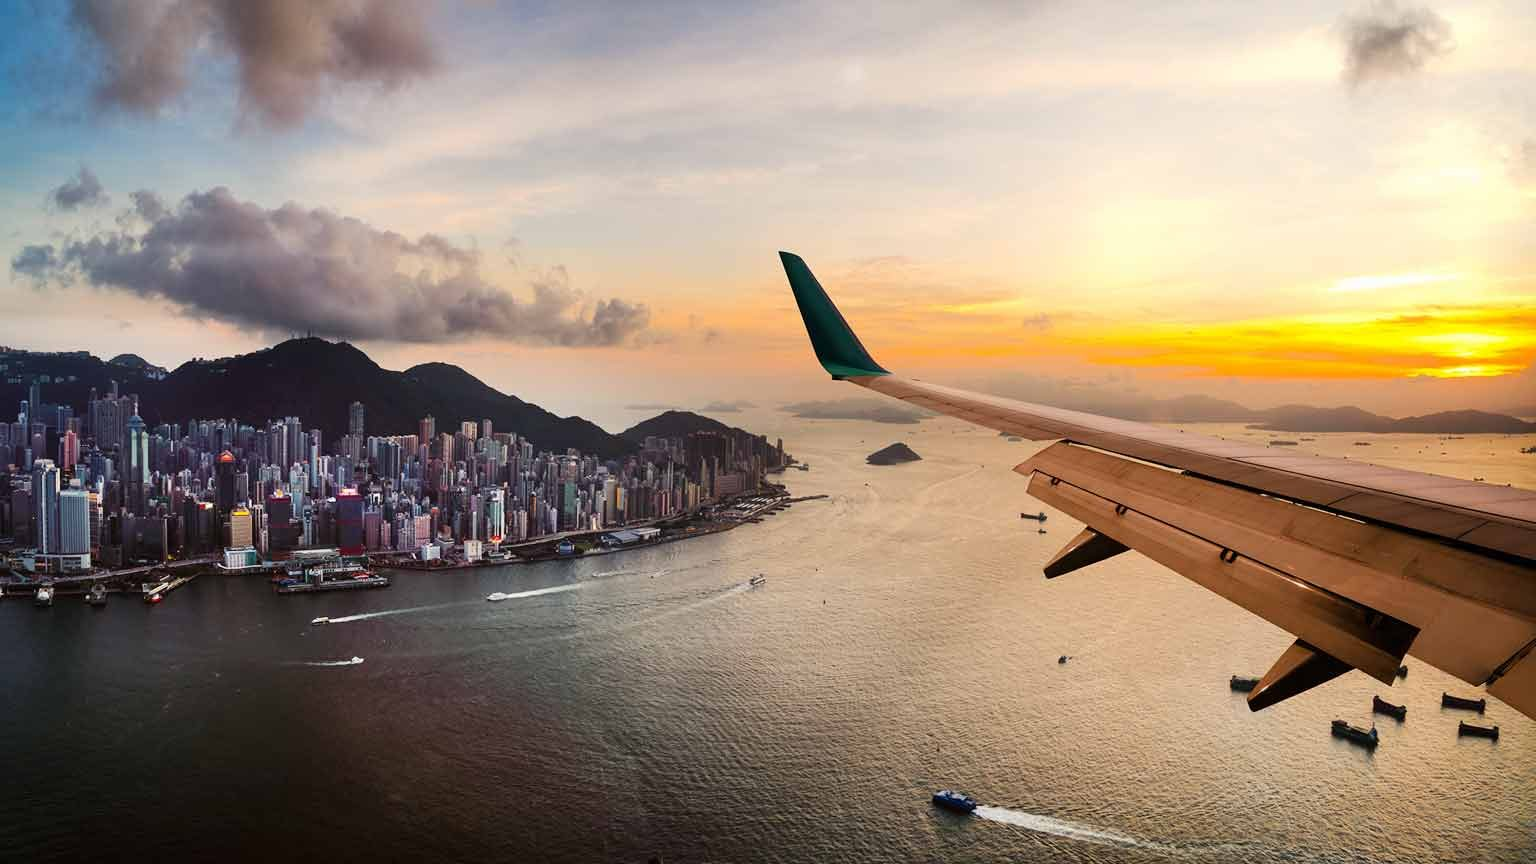 Plane over Hong Kong